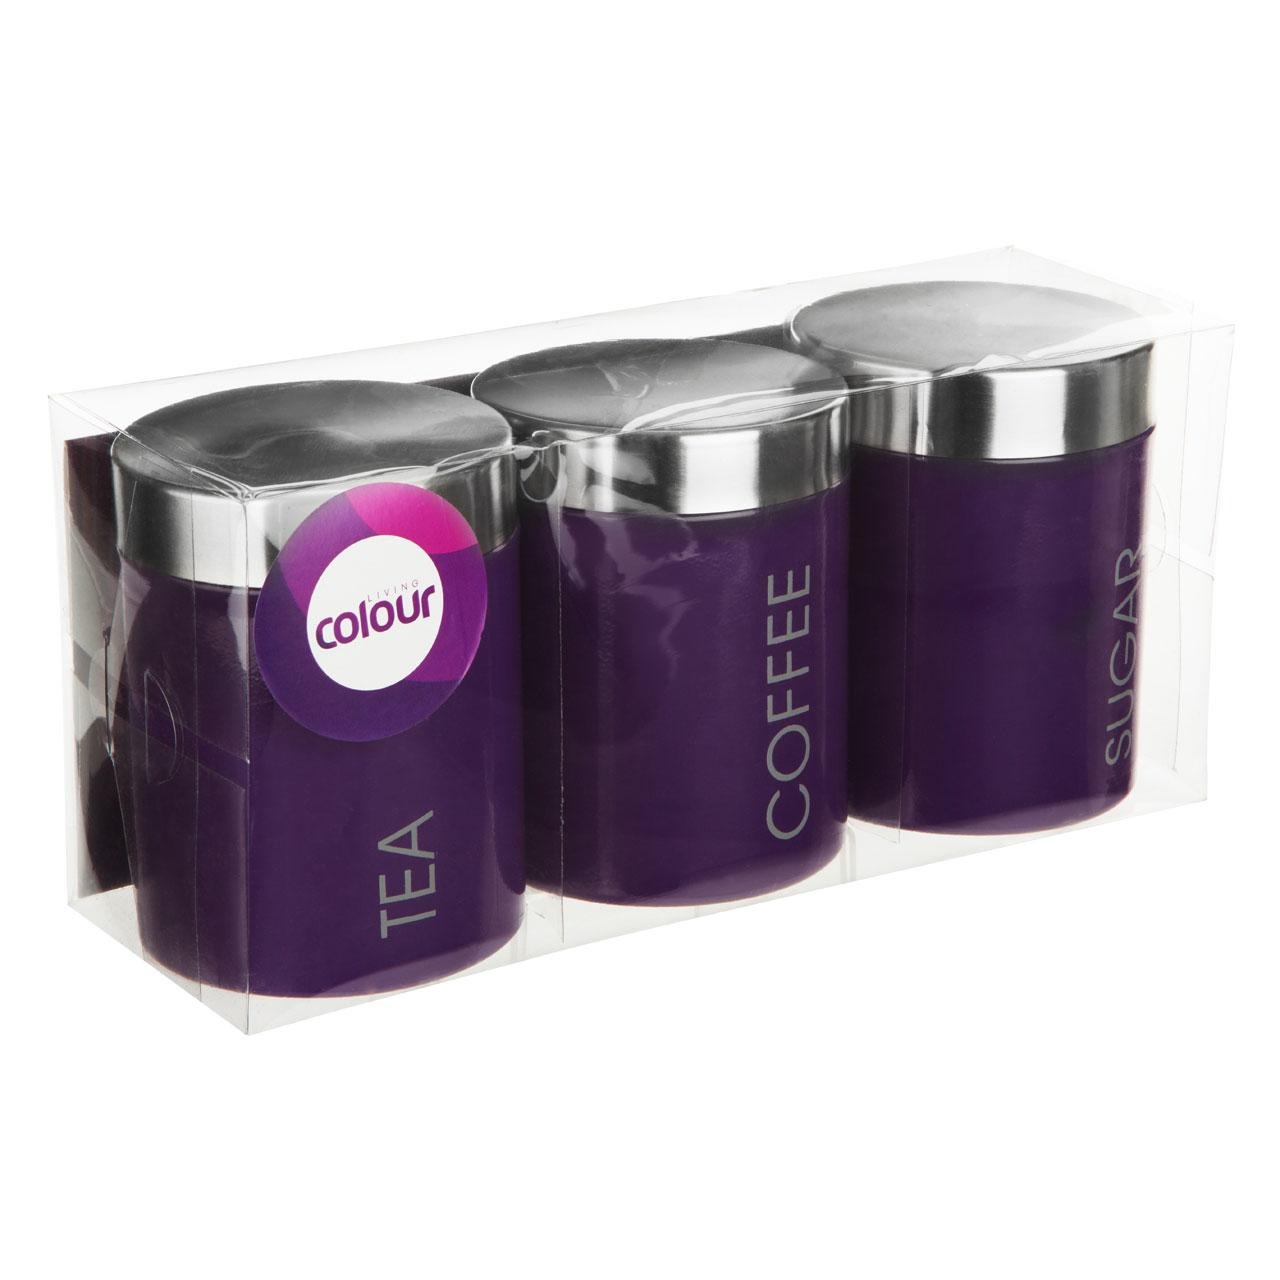 premier housewares liberty tea coffee and sugar canisters set kitchen canisters view larger